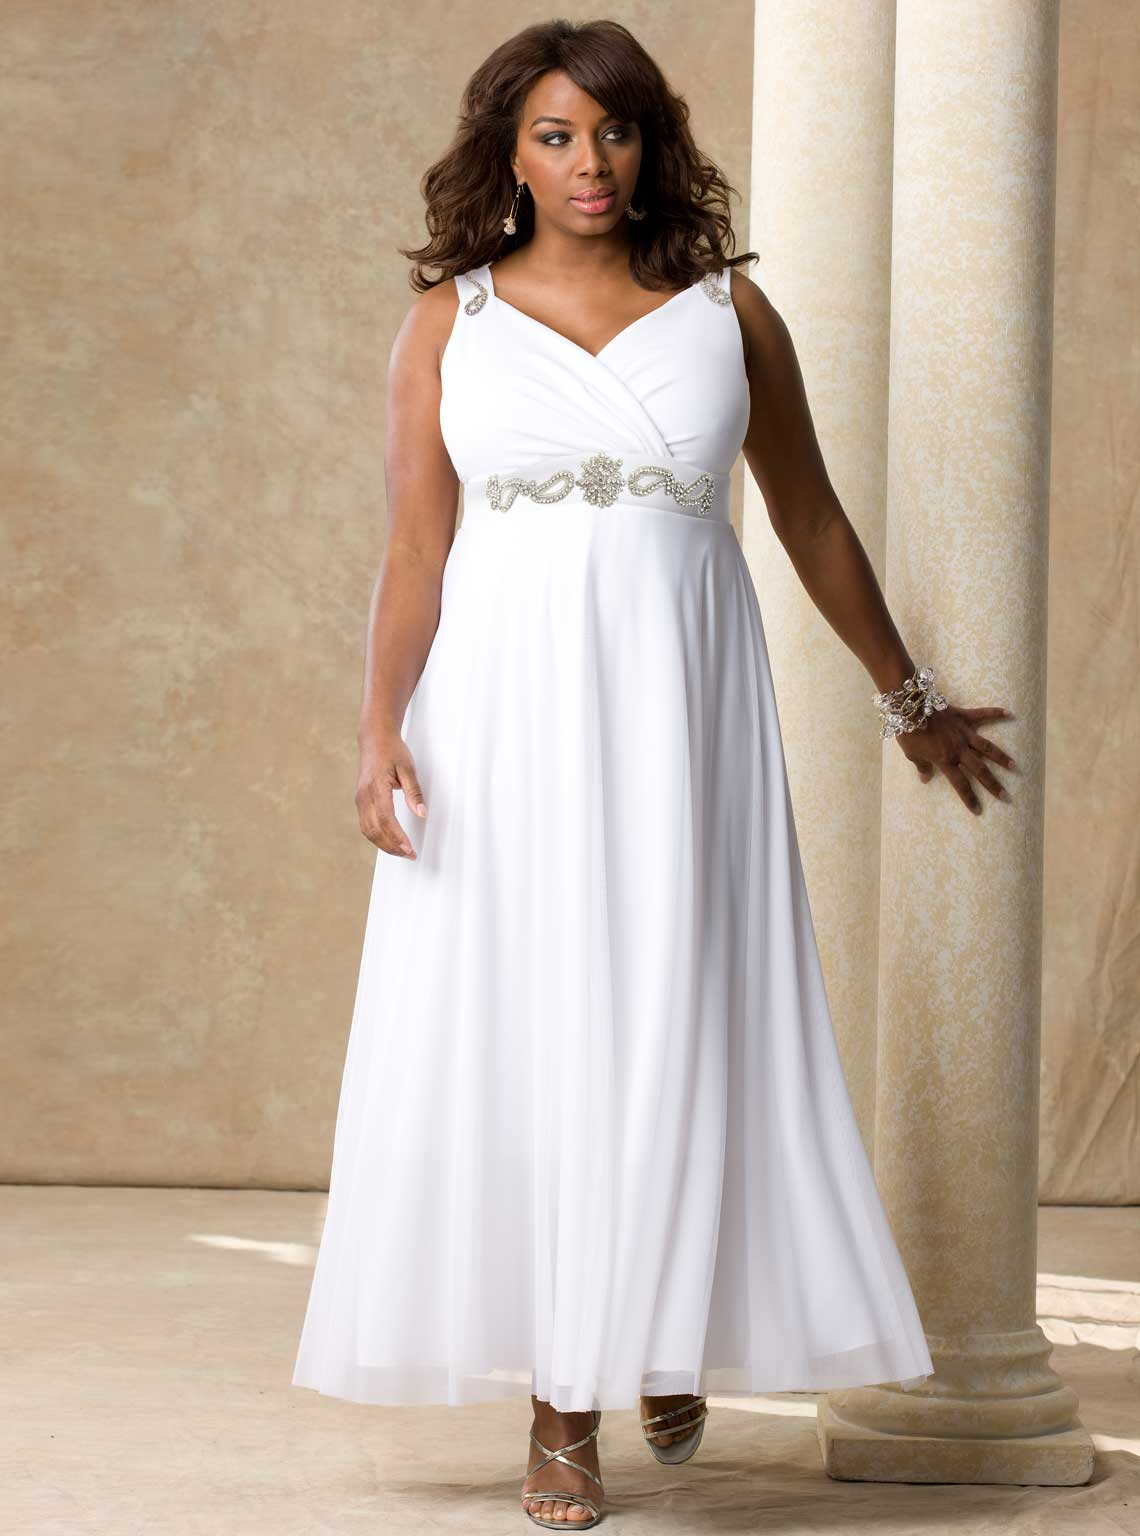 black_women_plus_size_wedding_dresses